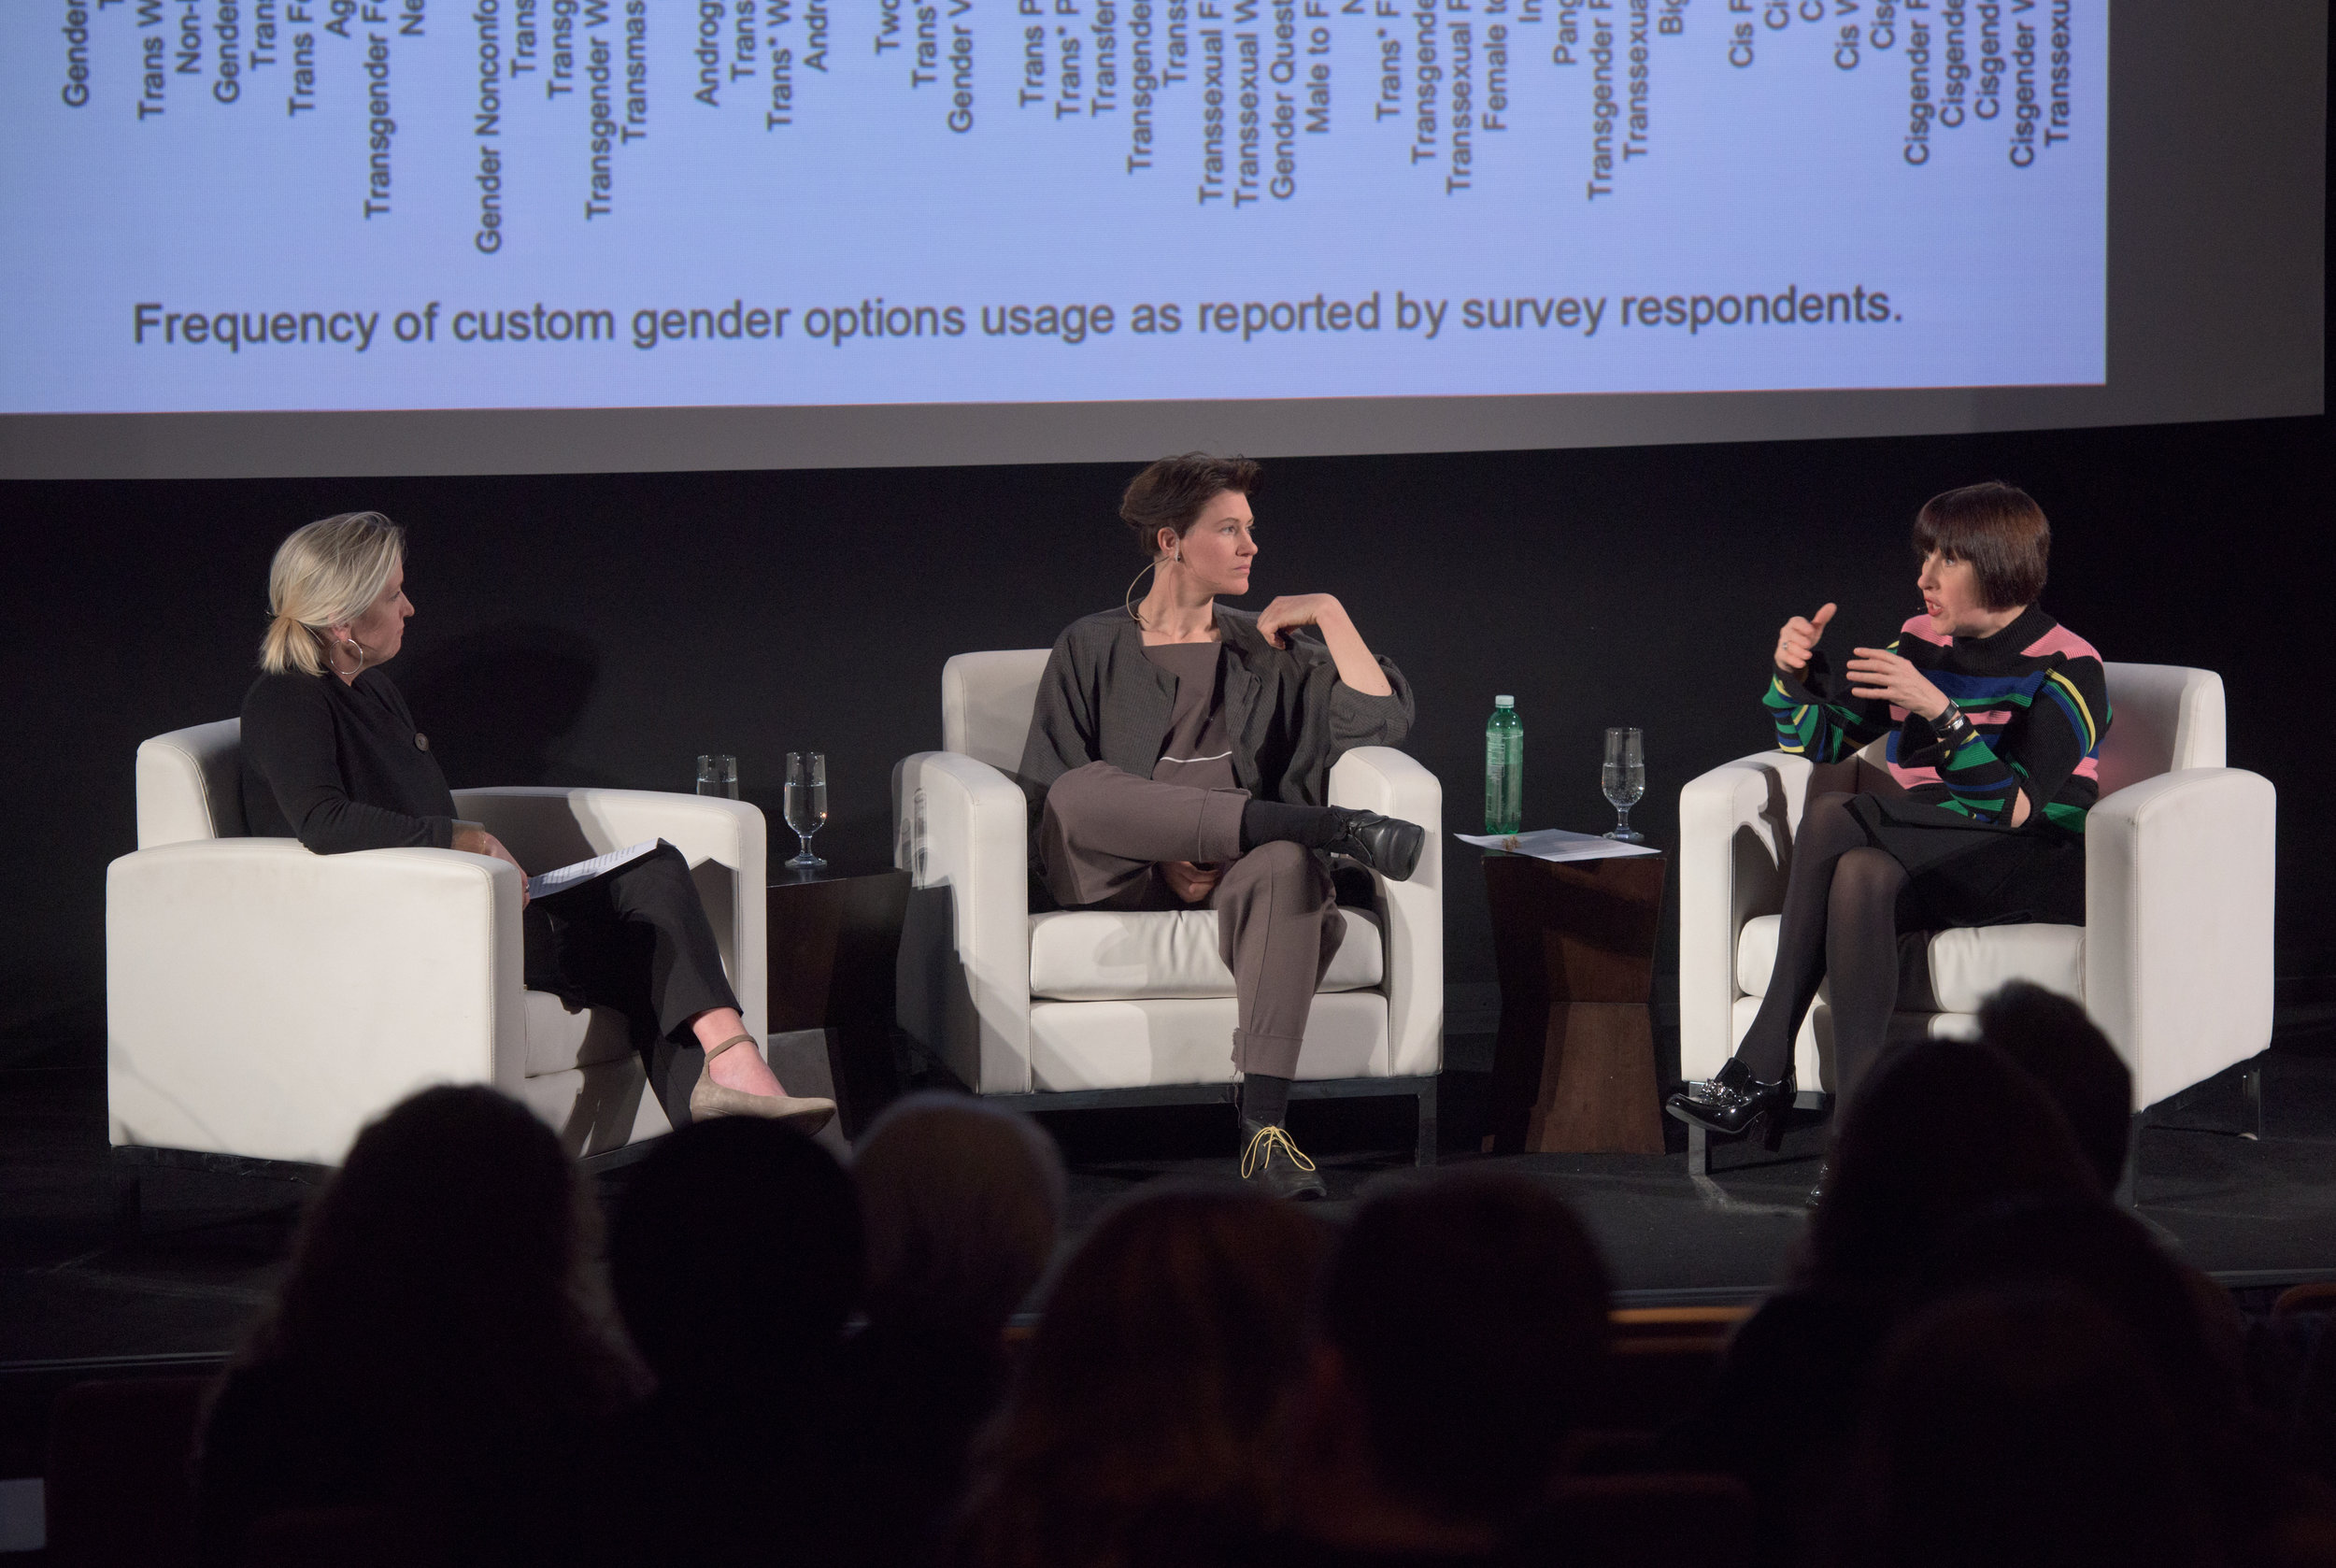 photo Kevin Allen  Fresh Talks |  National Museum of Women in the Arts,  Washington D.C. USA, Keynote Presenter, With  Alice Rawsthorn . A conversation on the role of gender identity in design.